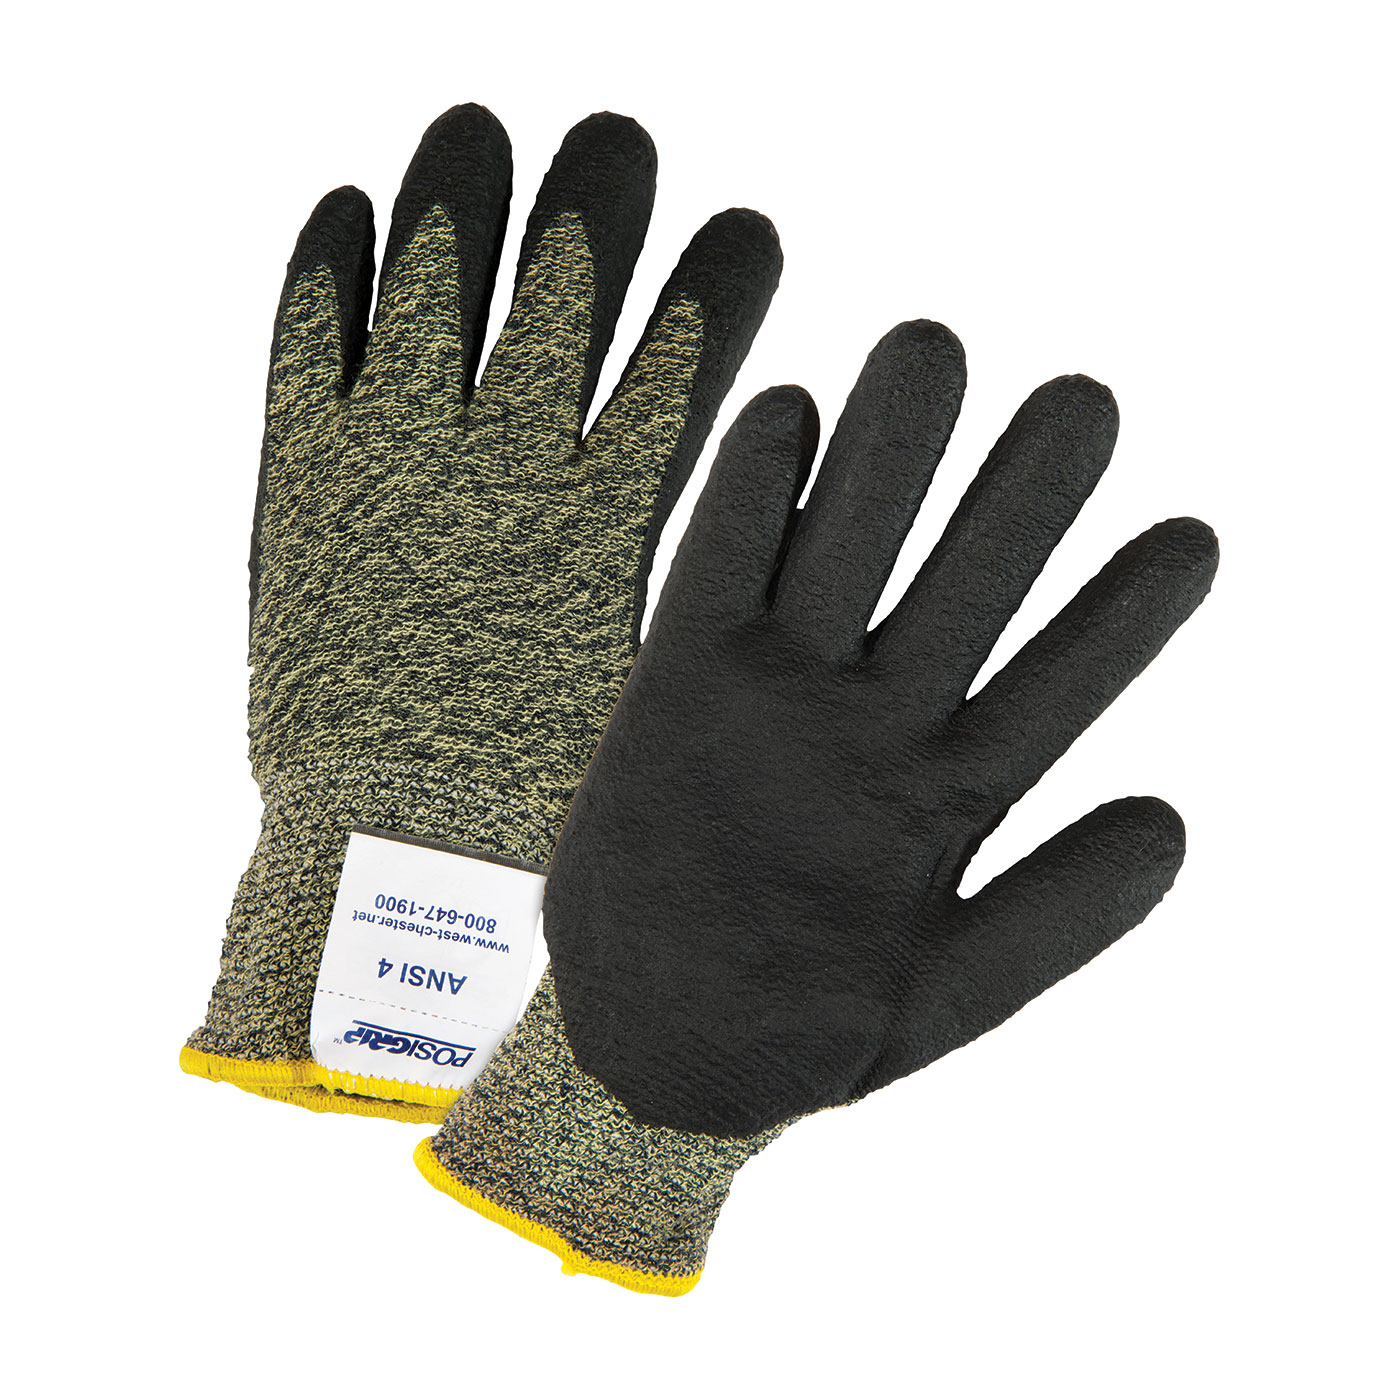 Seamless Knit Aramid Blended Antimicrobial Glove with Nitrile Coated Foam Grip on Palm & Fingers, Green, 2XL